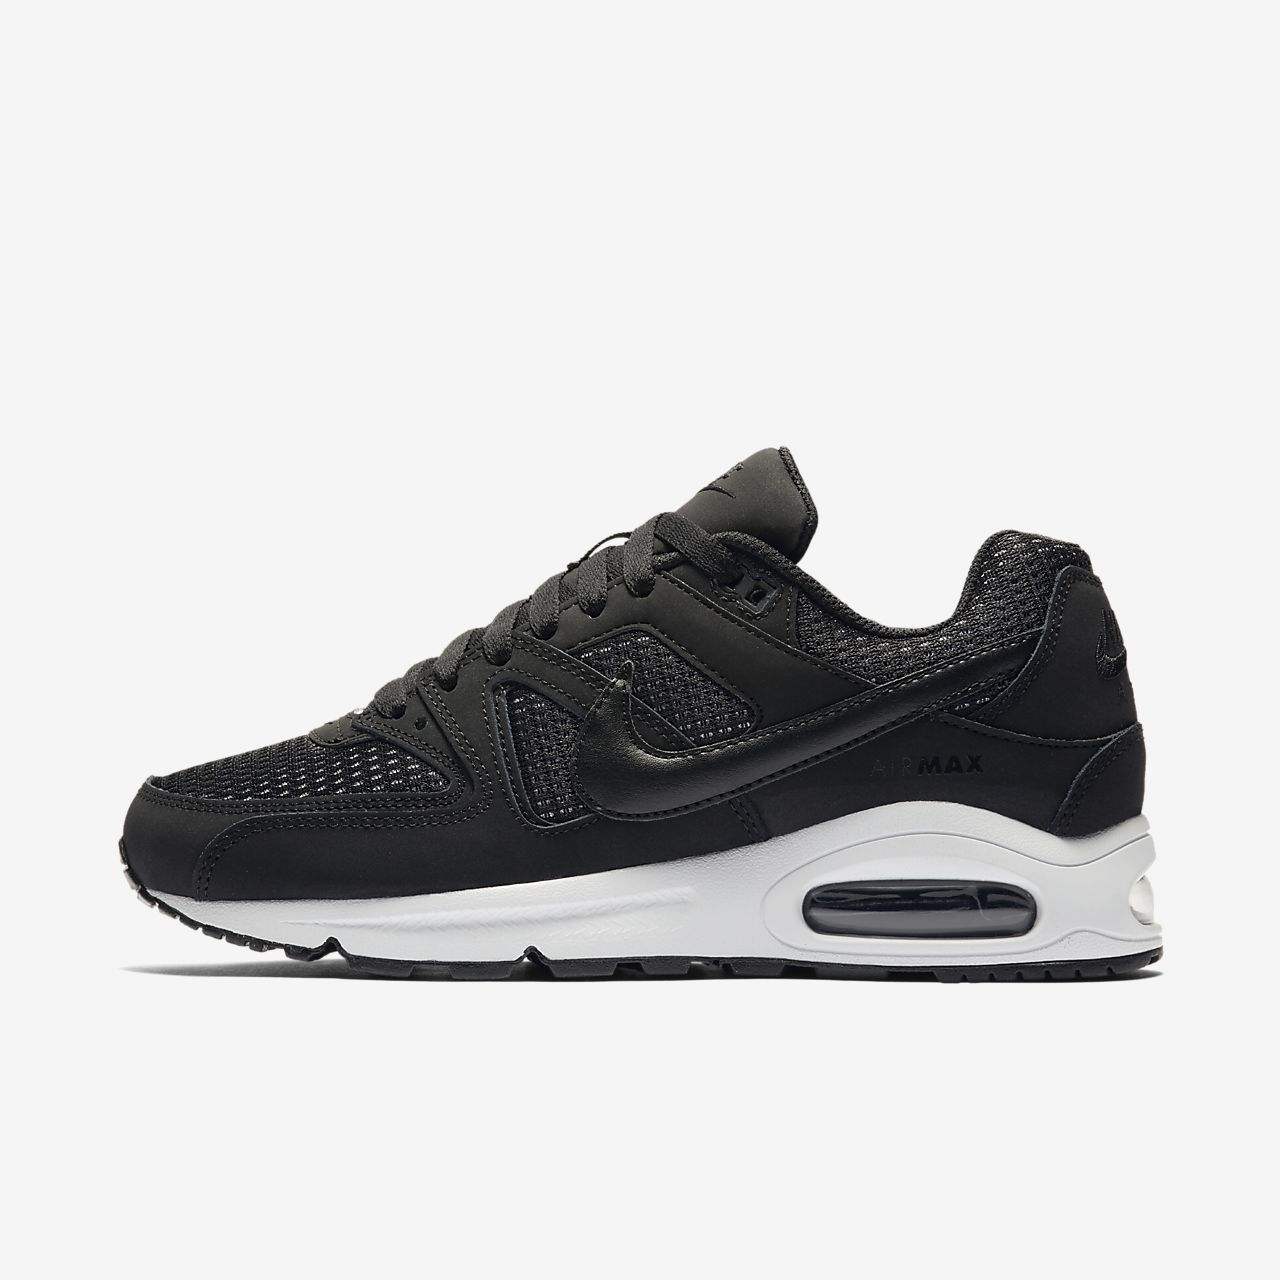 half off 836fe b36f2 ... Nike Air Max Command Women s Shoe